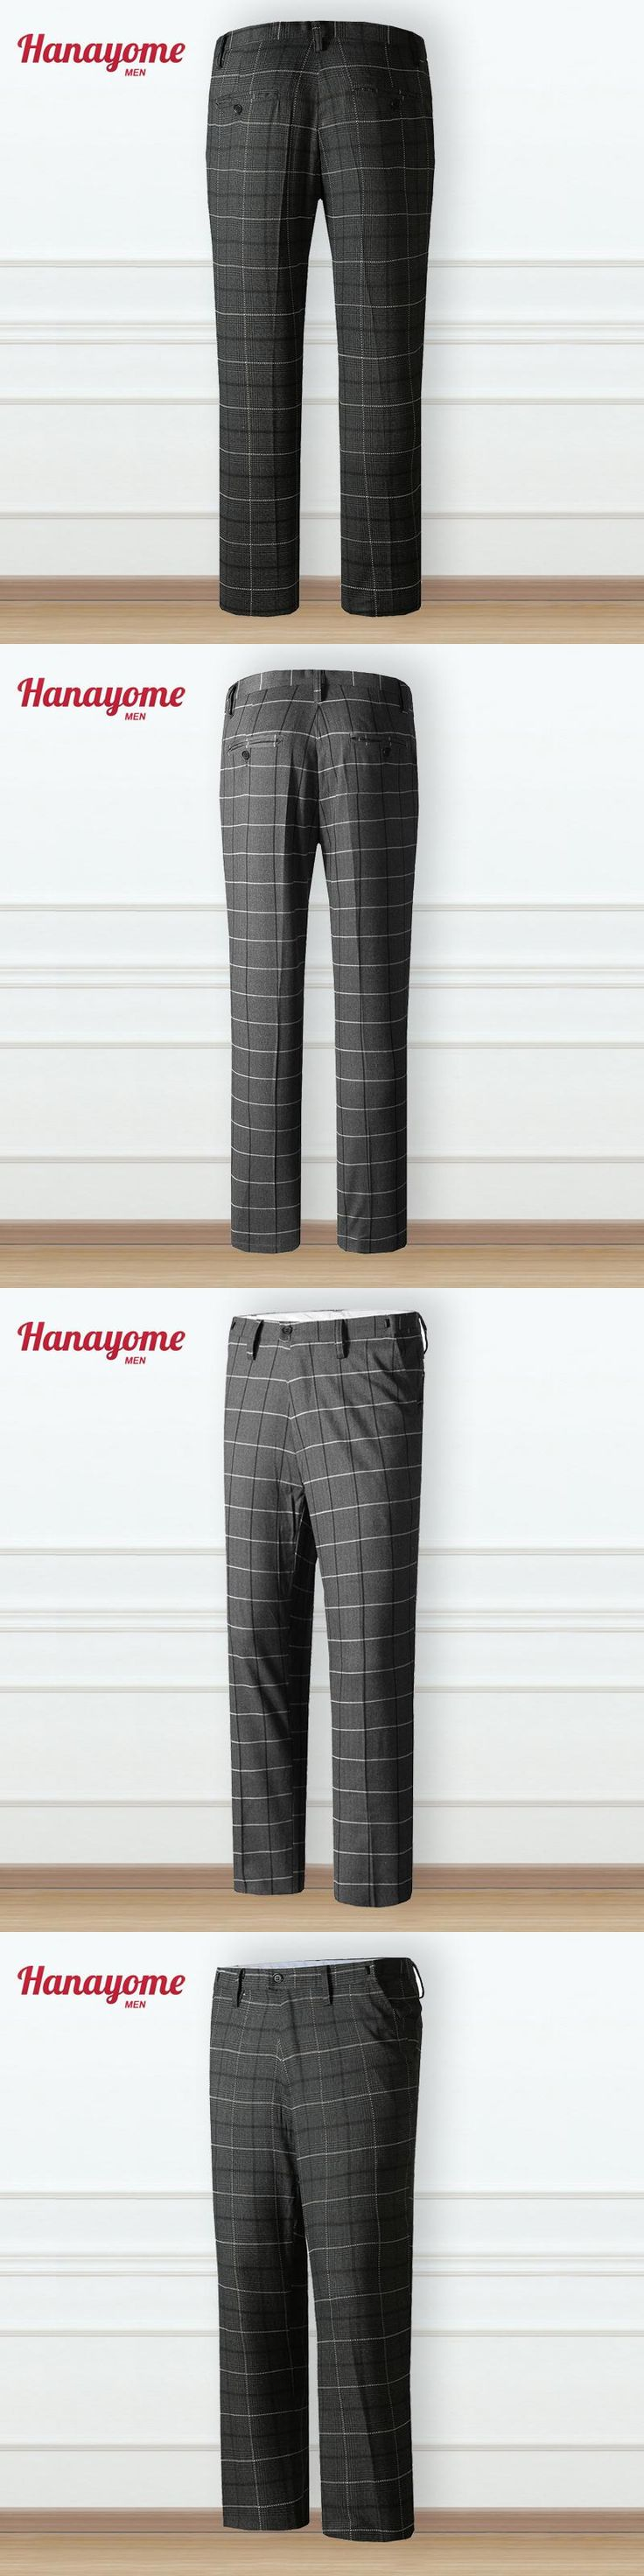 Heather Grey Grid Pants For Male One Piece Long Pant 2017 Casual Clothes Mens Grey Color Suit Pants Slim Fit Tuxedo Custom SI80